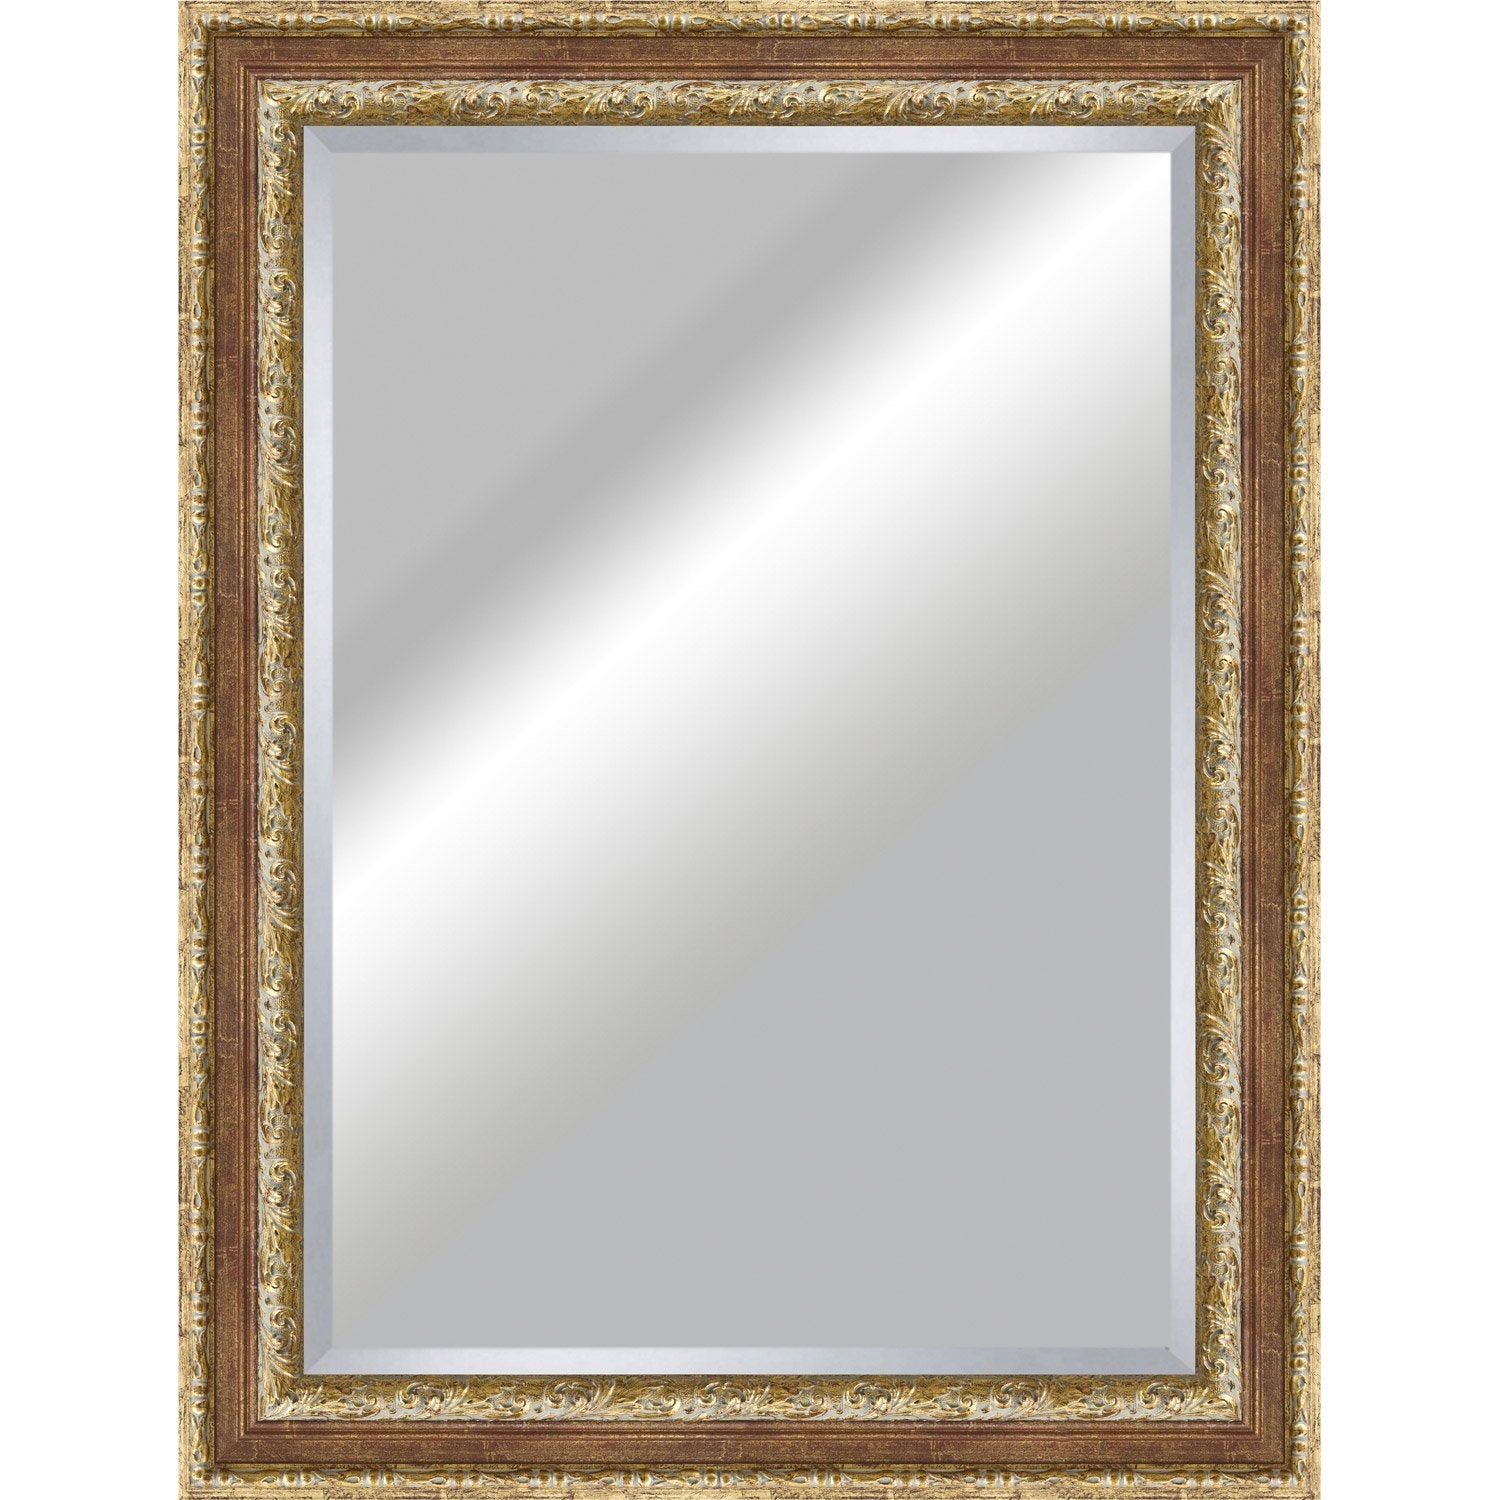 Miroir tradition rouge 50x70 cm leroy merlin - Miroirs leroy merlin ...